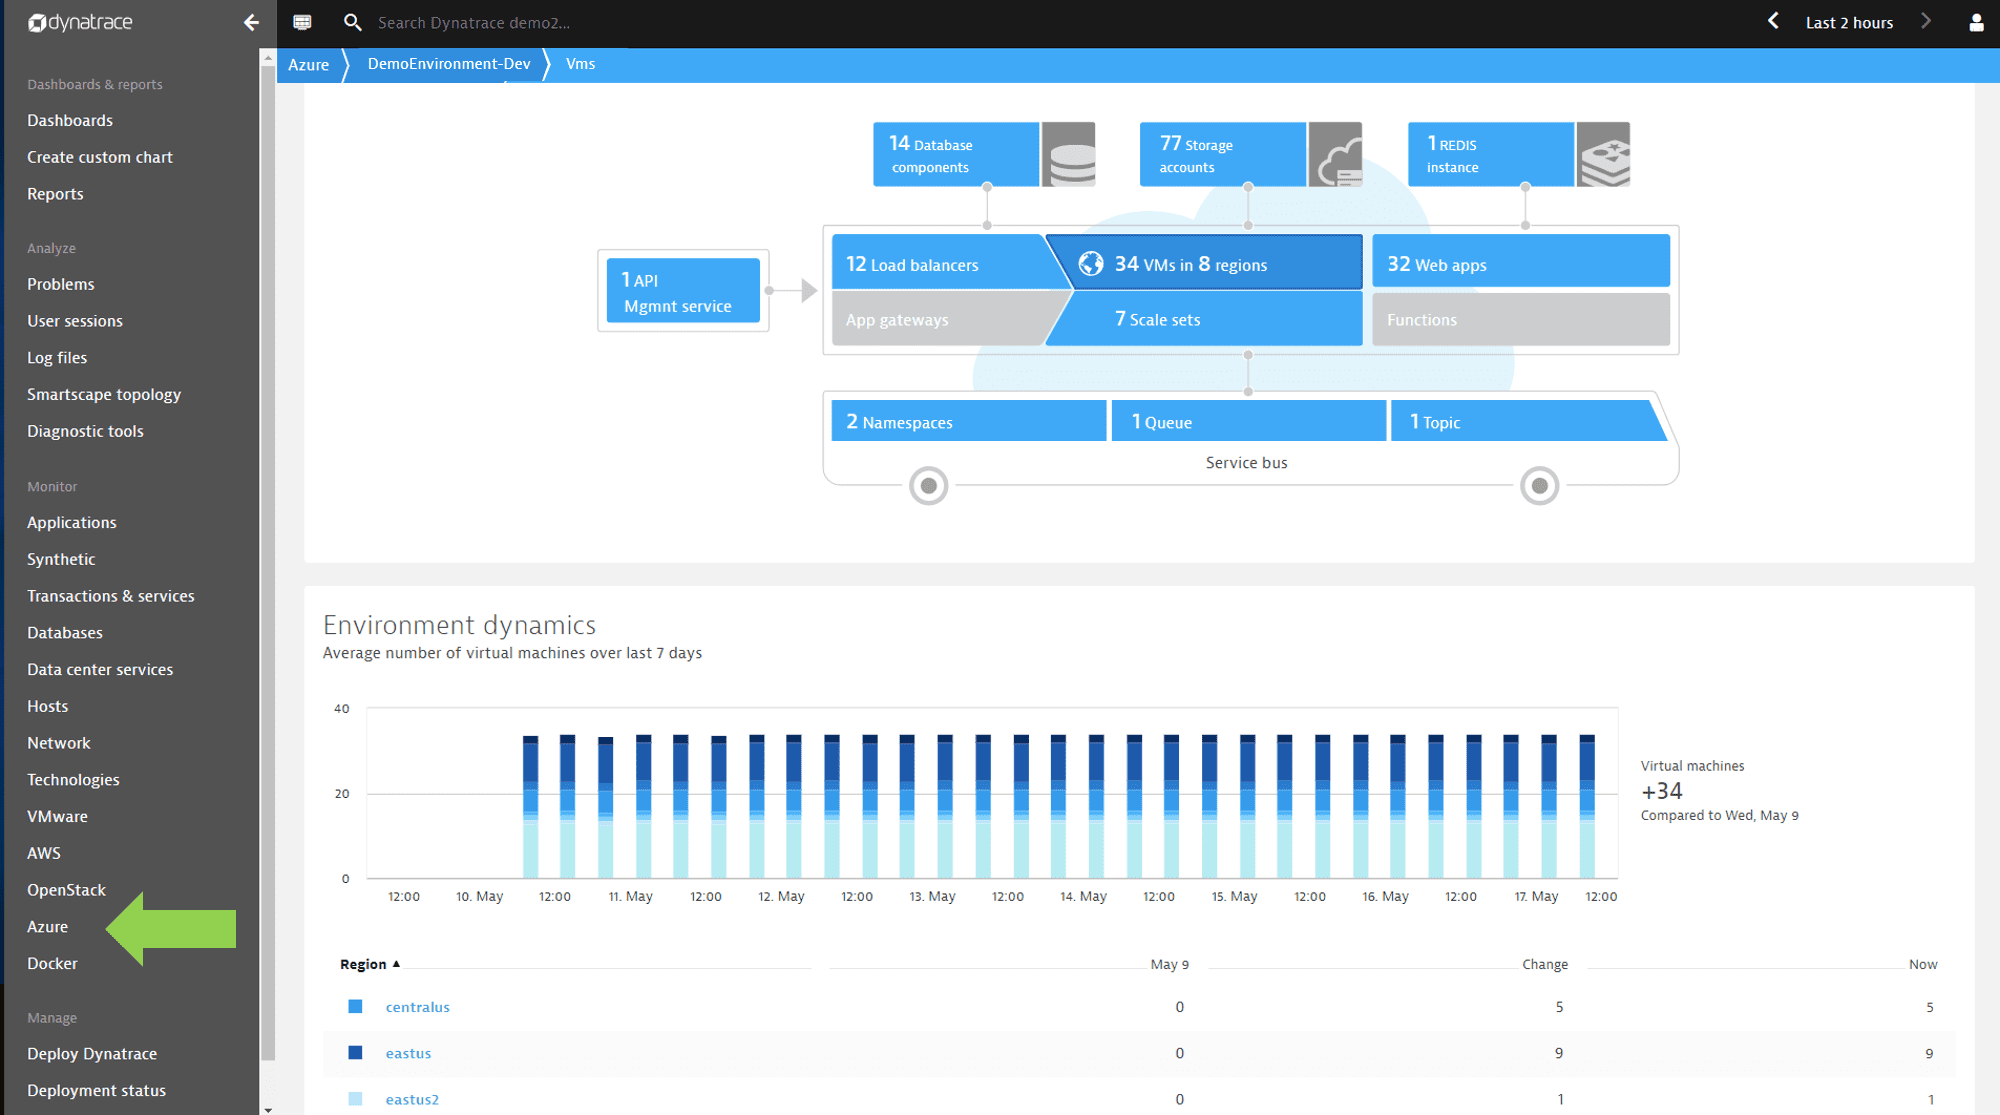 Azure overview page